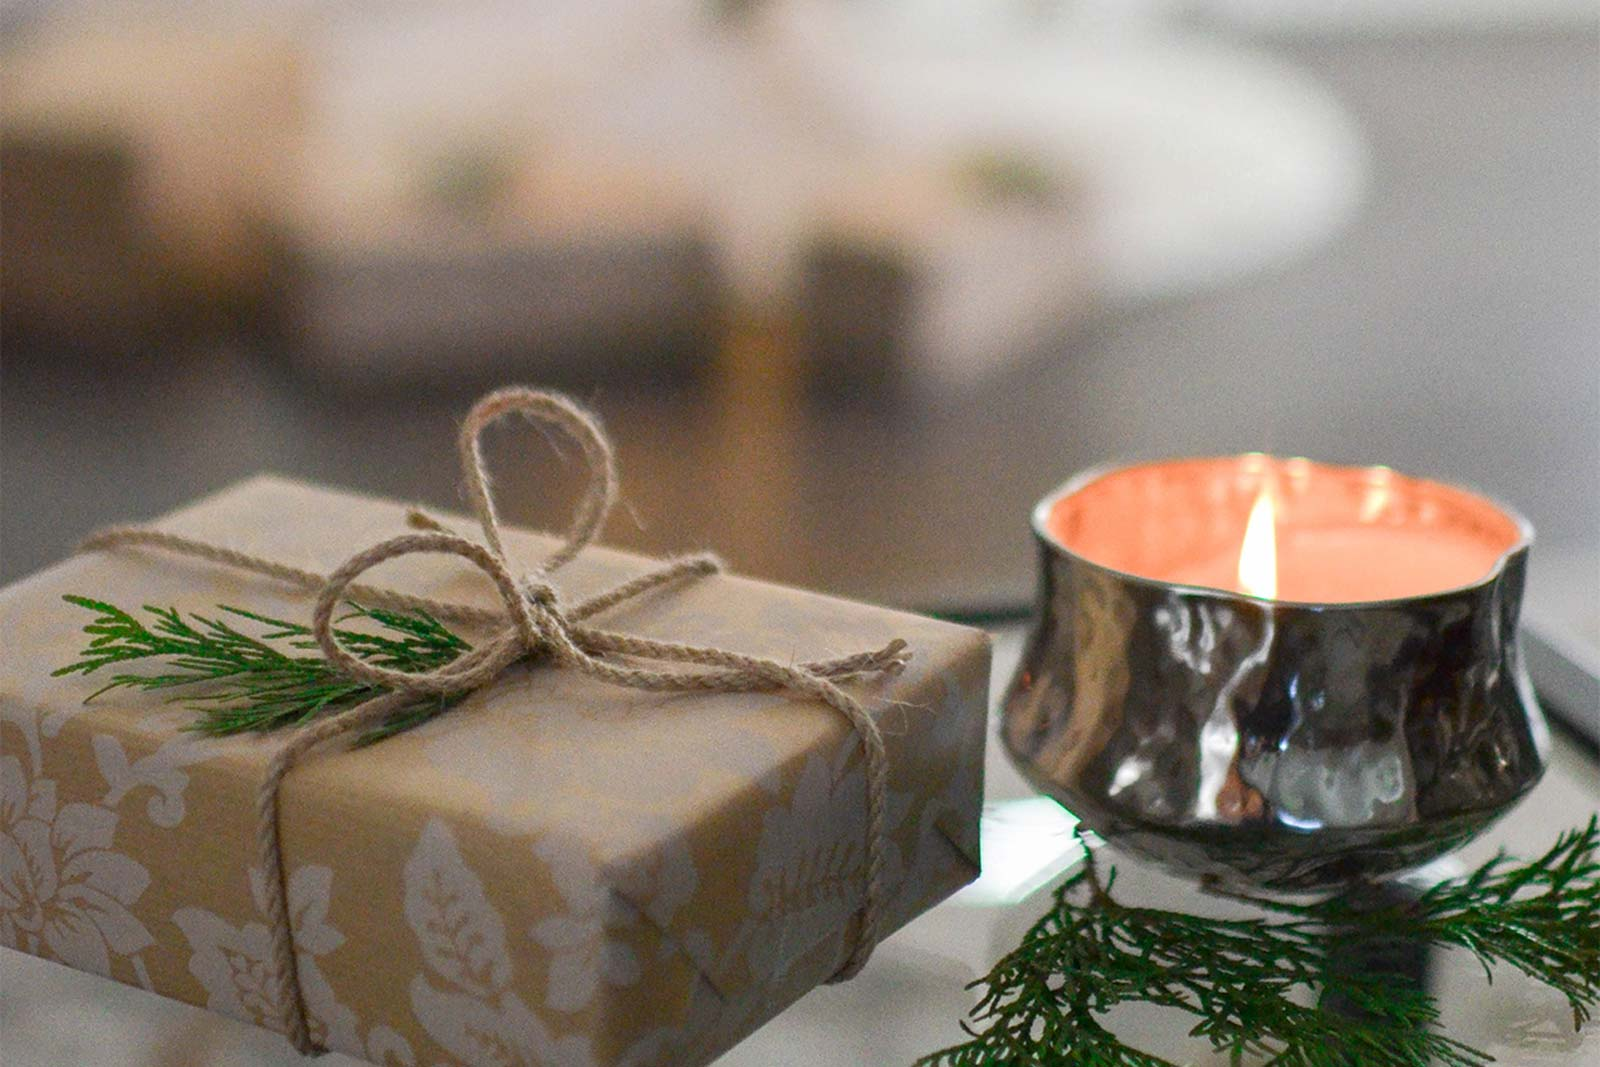 Holiday Hints For Alzheimer's Caregivers